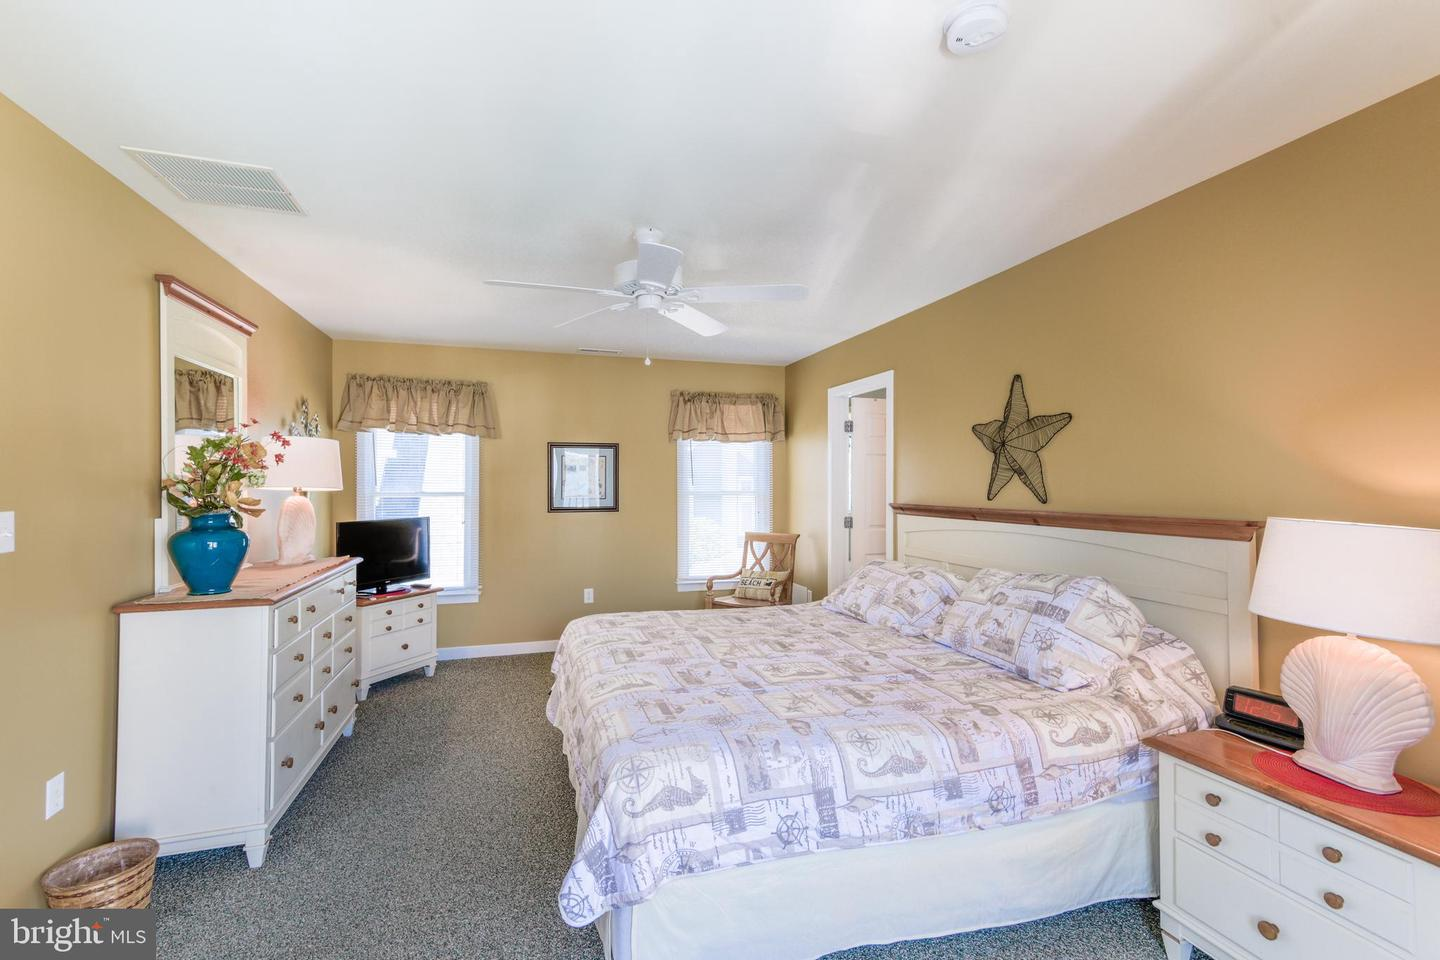 DESU140752-301729560099-2019-05-20-15-11-27 7 Olive Ave | Rehoboth Beach, DE Real Estate For Sale | MLS# Desu140752  - Coldwell Banker Resort Realty